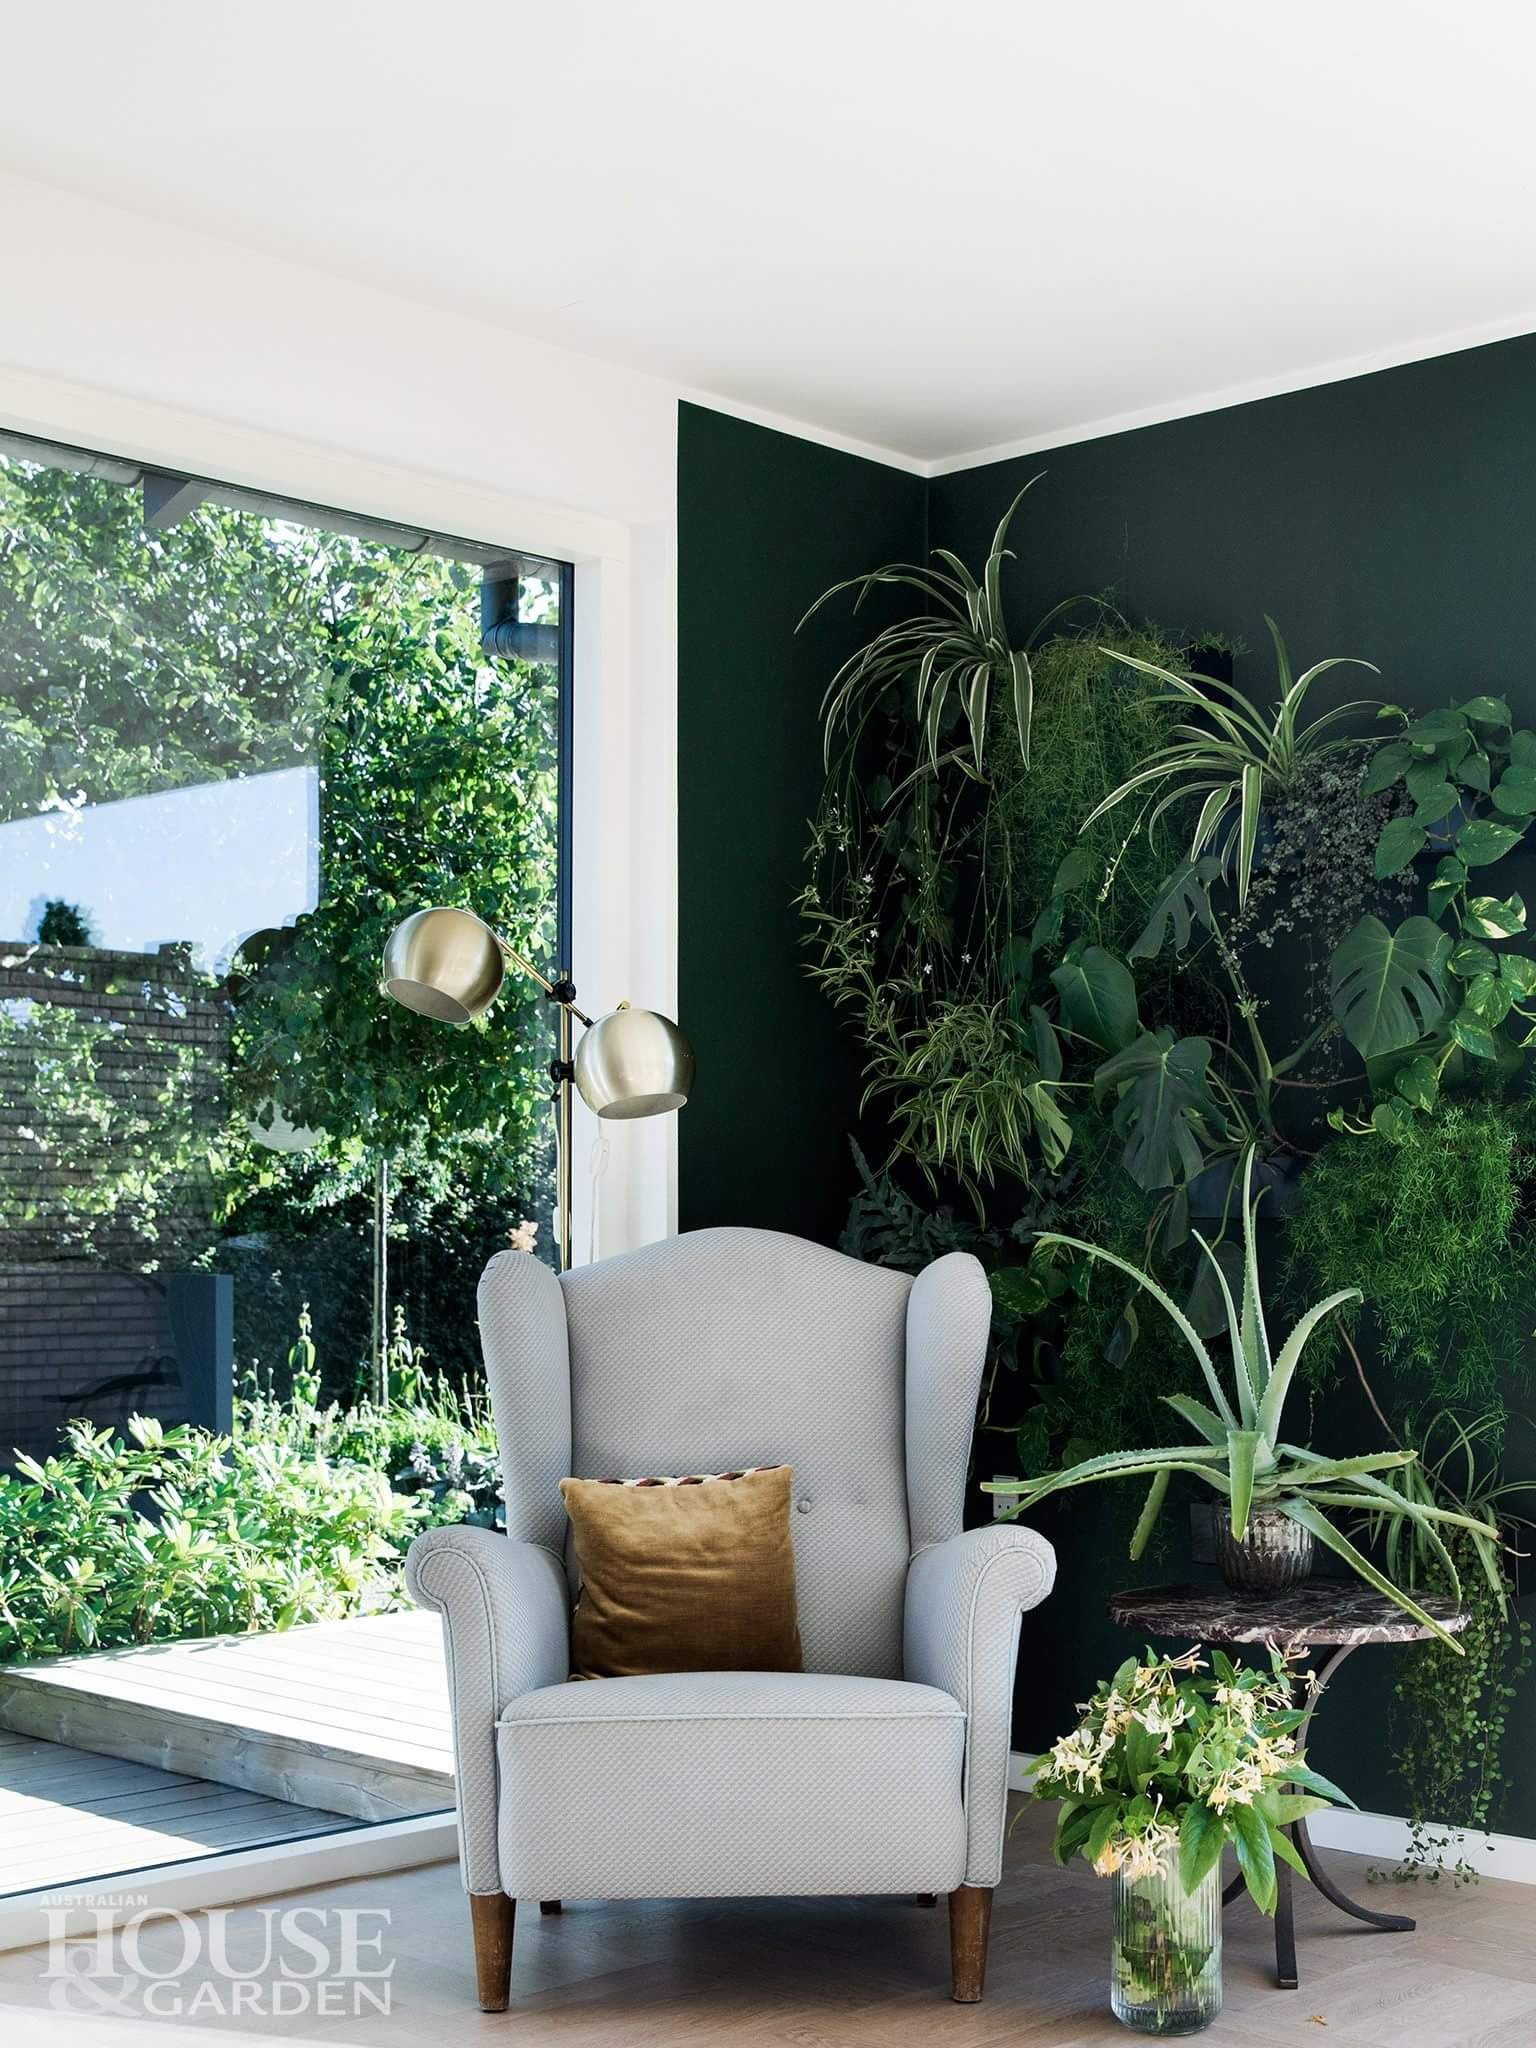 Living Room Design Green: Love The Green Wall With Plants